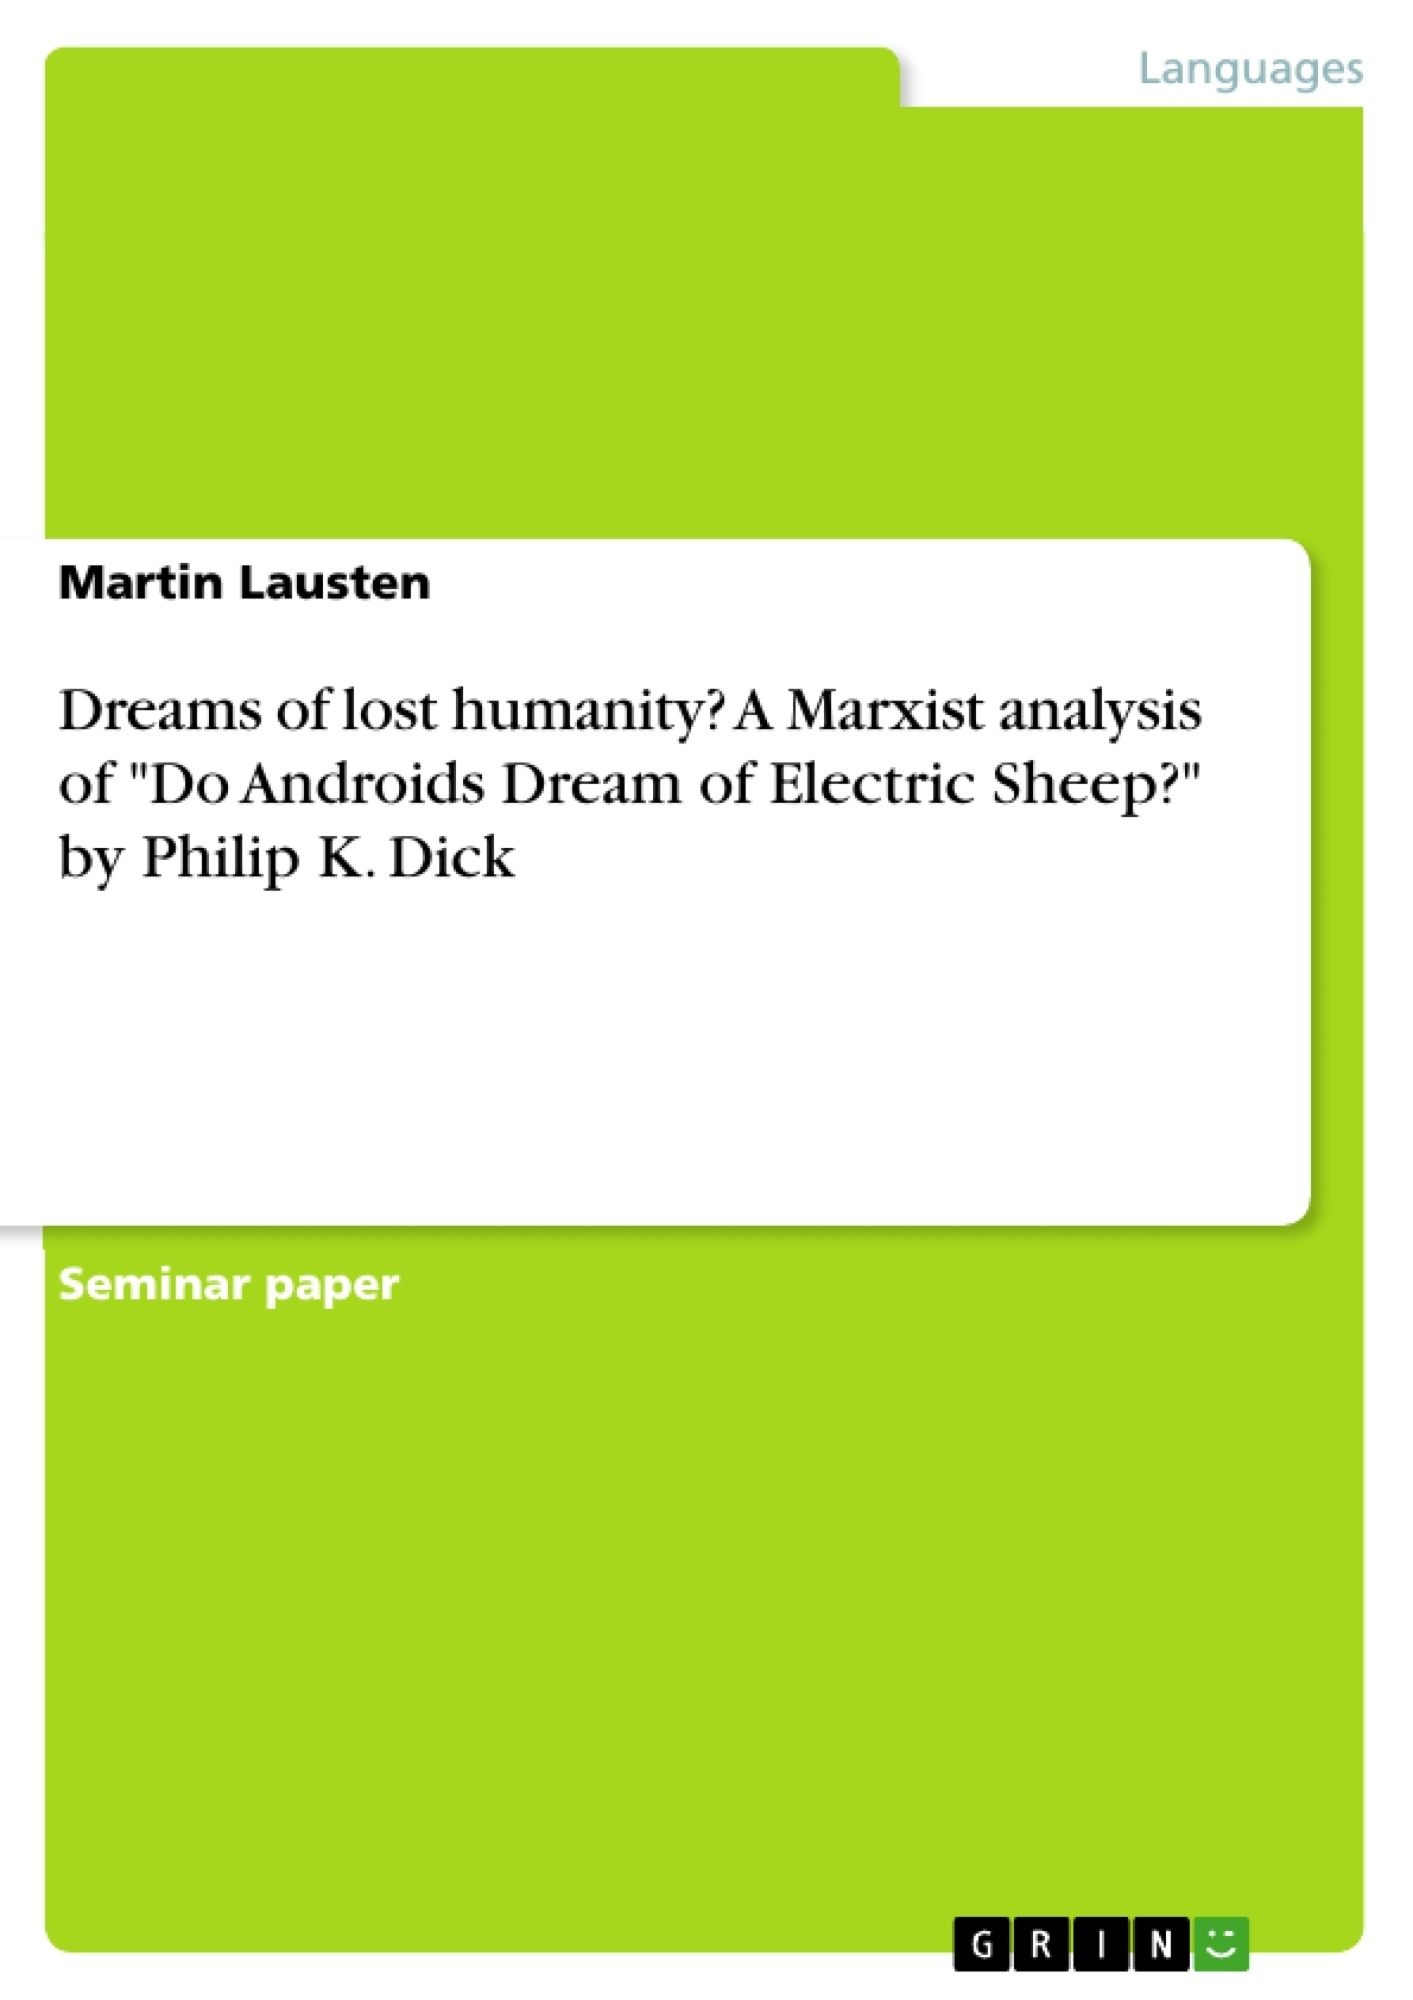 """Title: Dreams of lost humanity? A Marxist analysis of  """"Do Androids Dream of Electric Sheep?"""" by Philip K. Dick"""